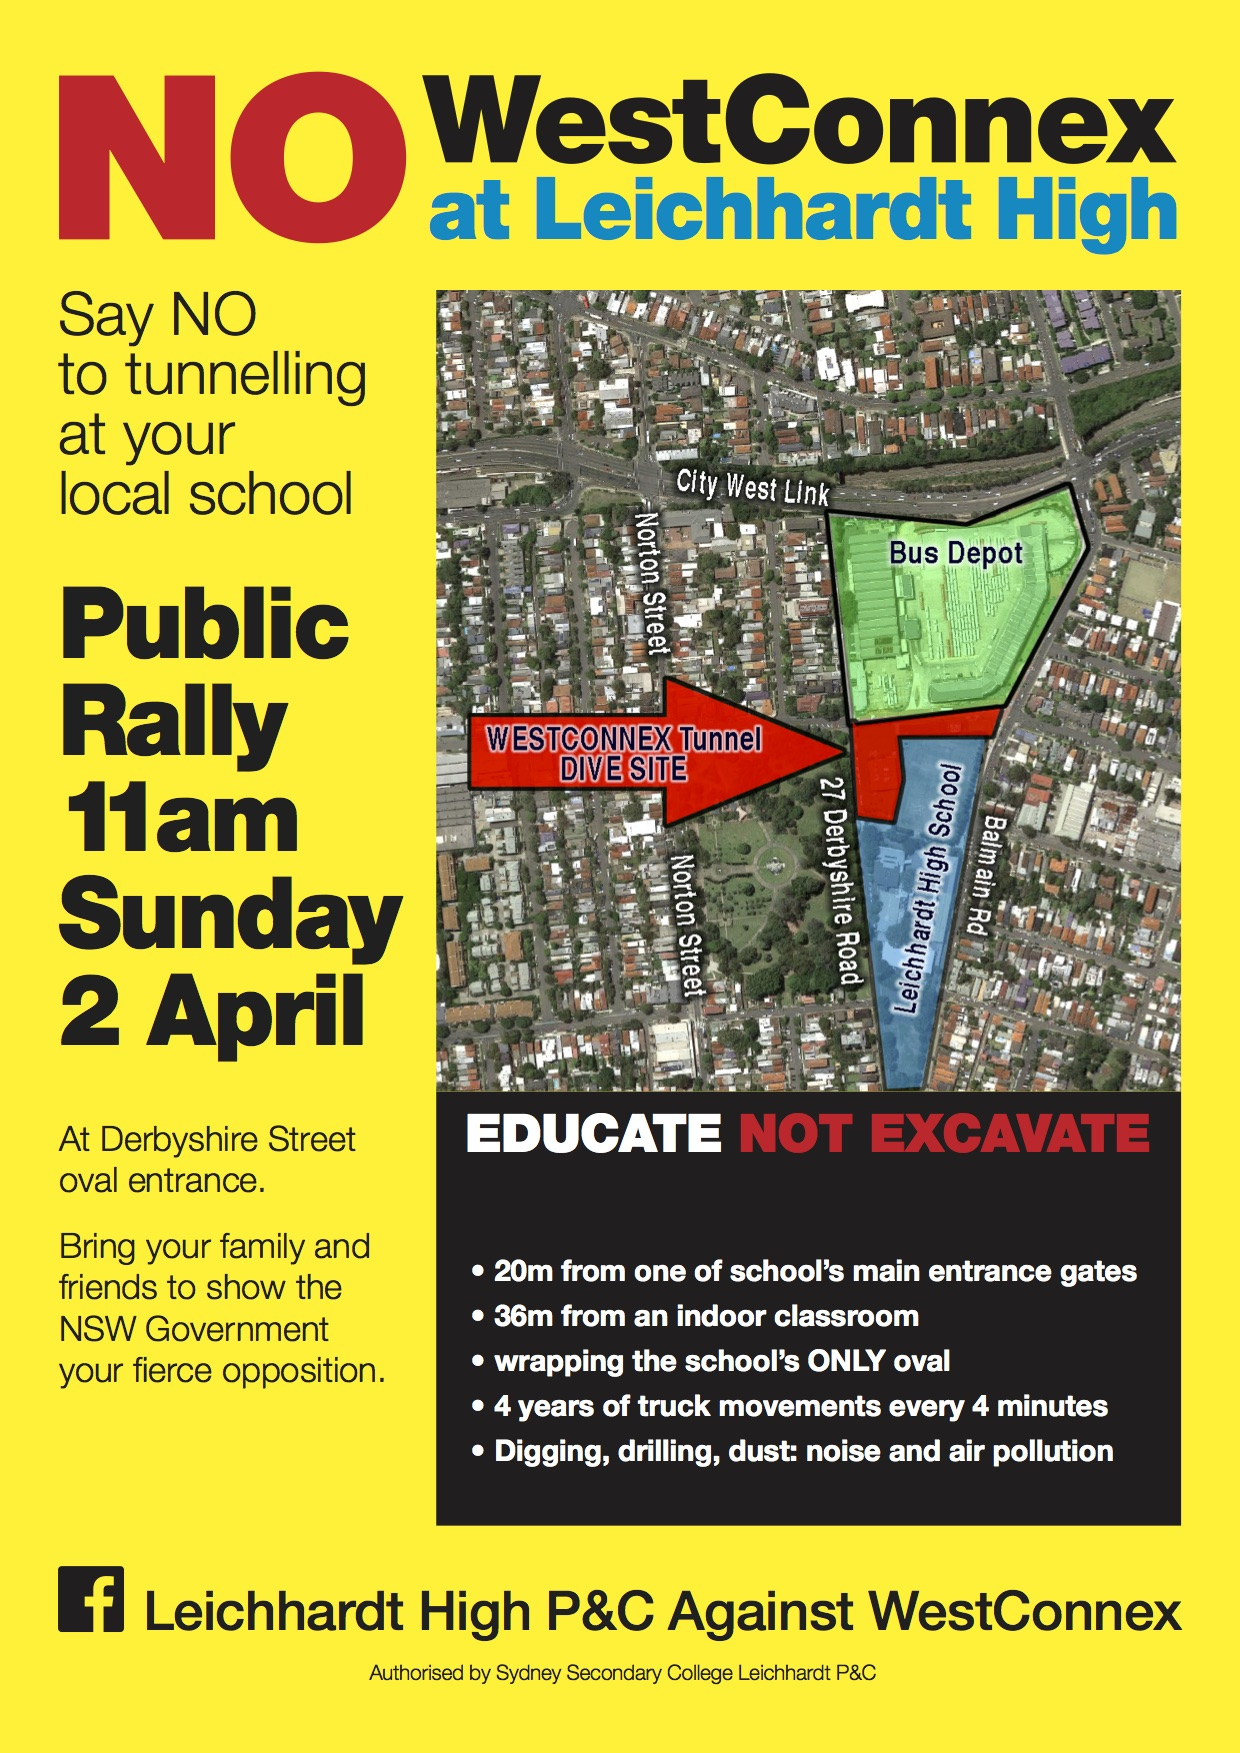 No-WestConnex-at-Leichhardt-High-RALLY_2.jpg